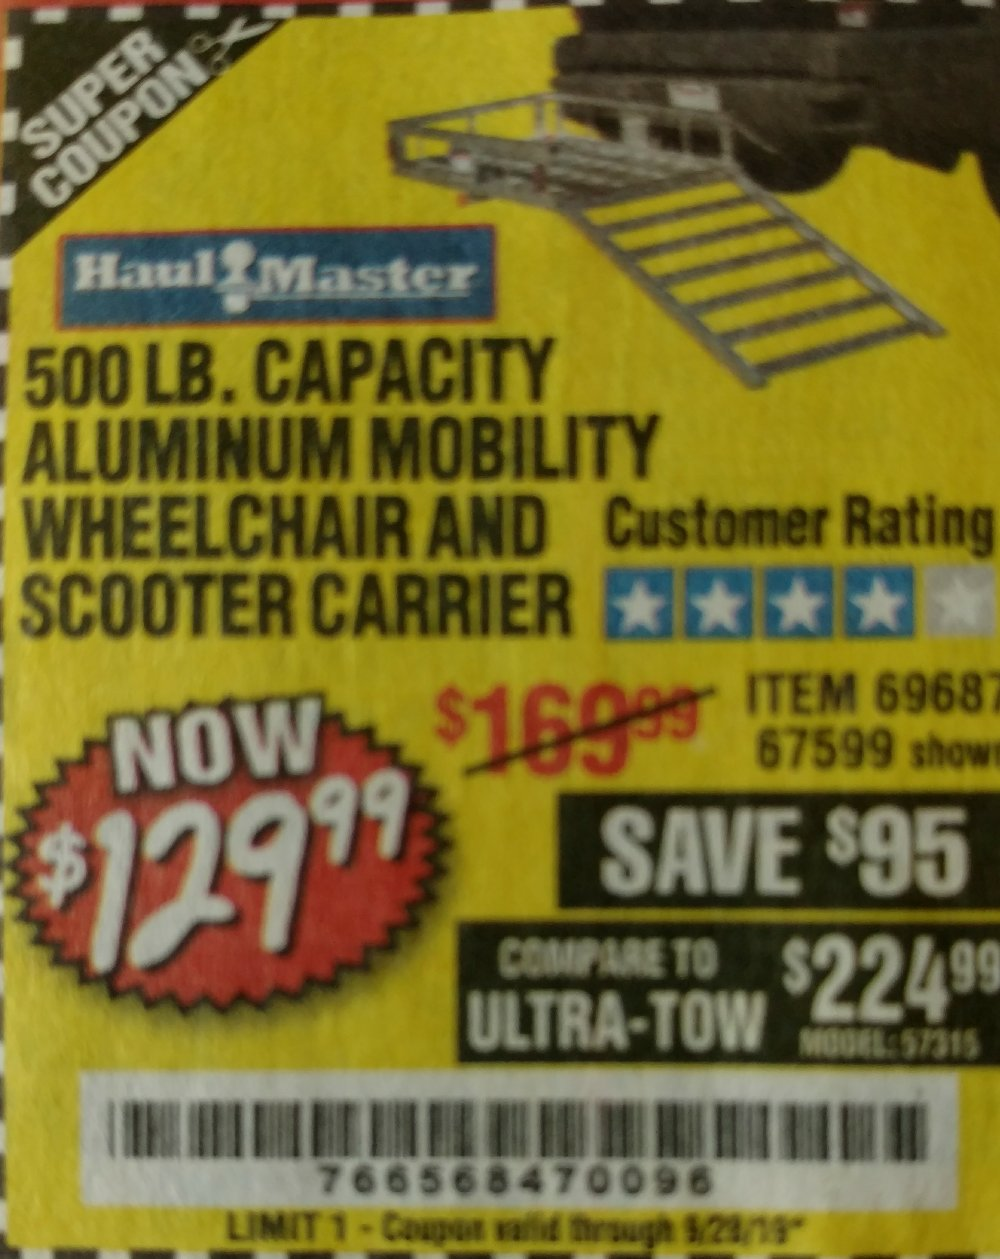 Harbor Freight Coupon, HF Coupons - 500 Lb. Capacity Aluminum Mobility Wheelchair And Scooter Carrier